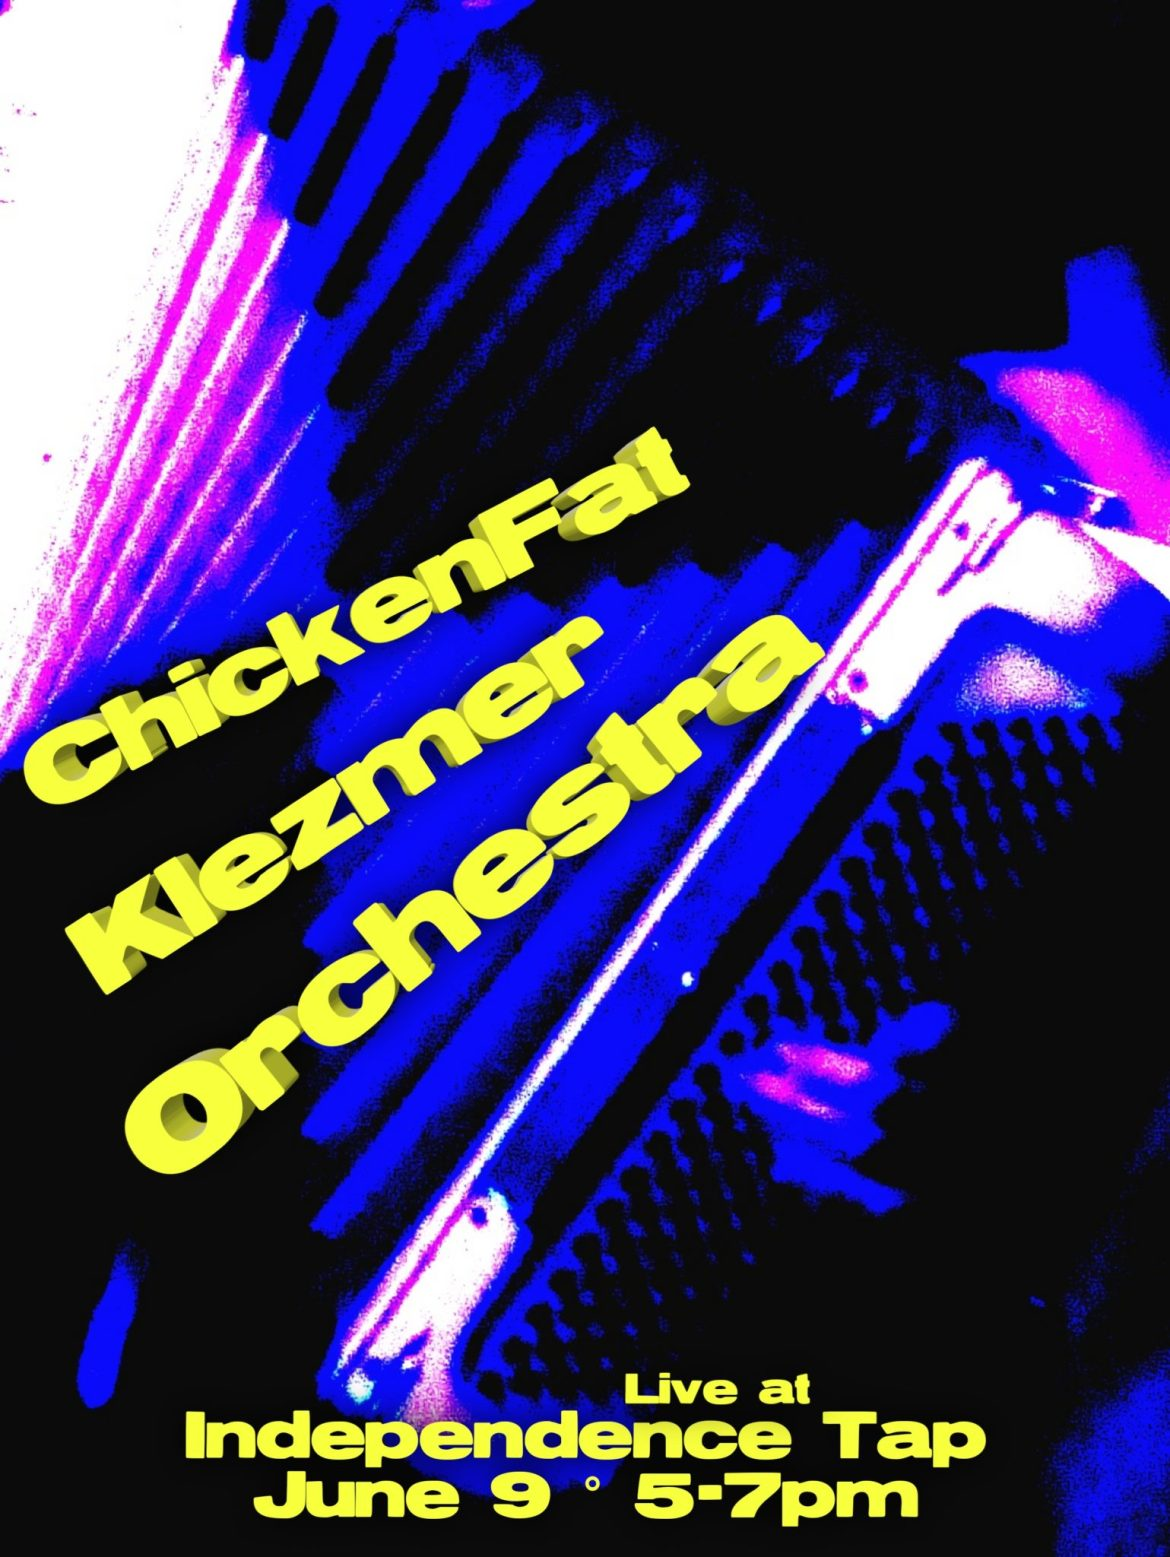 ChickenFat Klezmer Orchestra at Independence Tap June 9, 2019